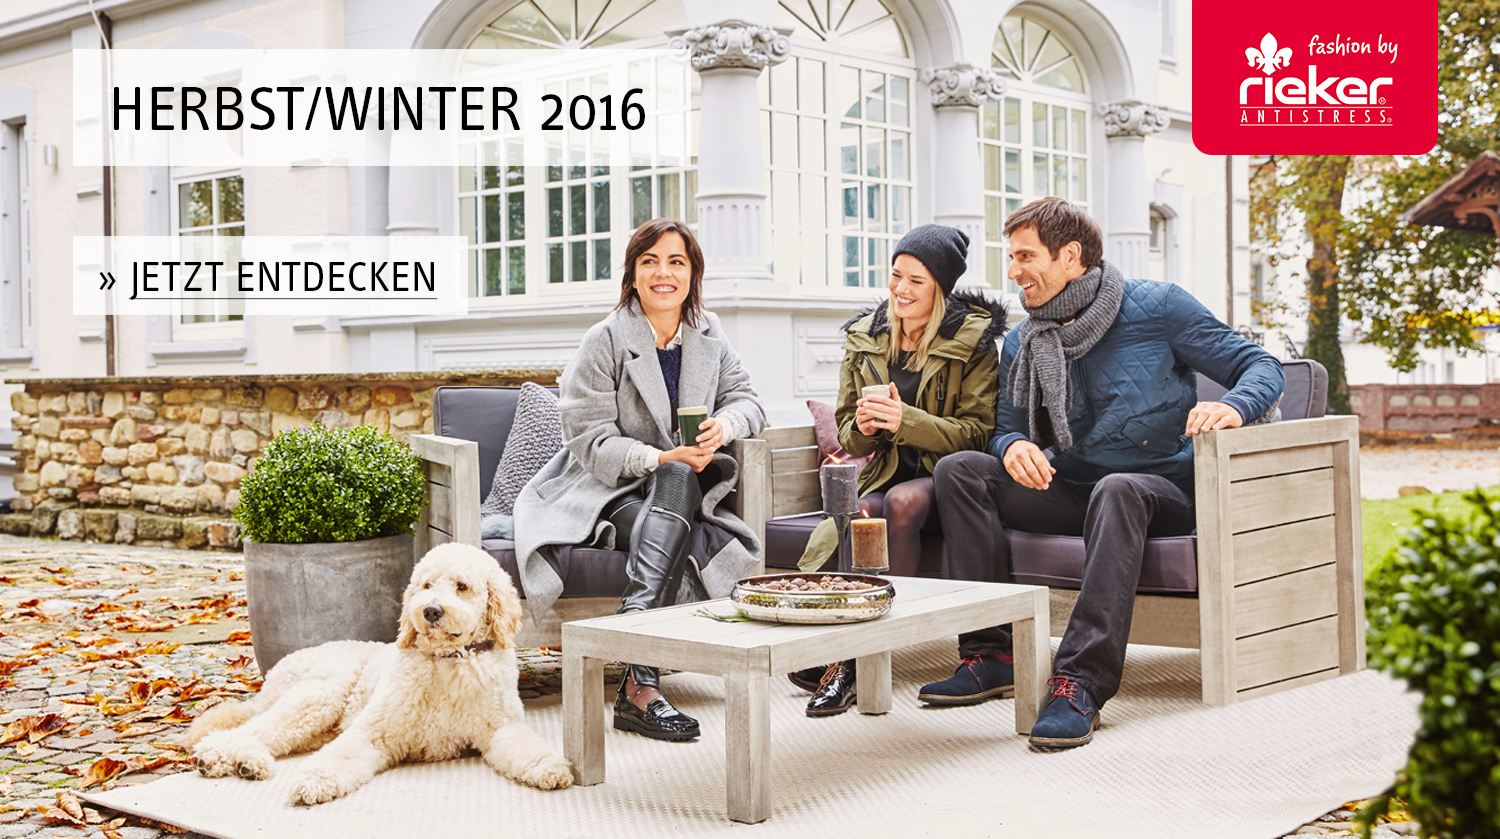 Rieker Herbst/Winter-Kollektion